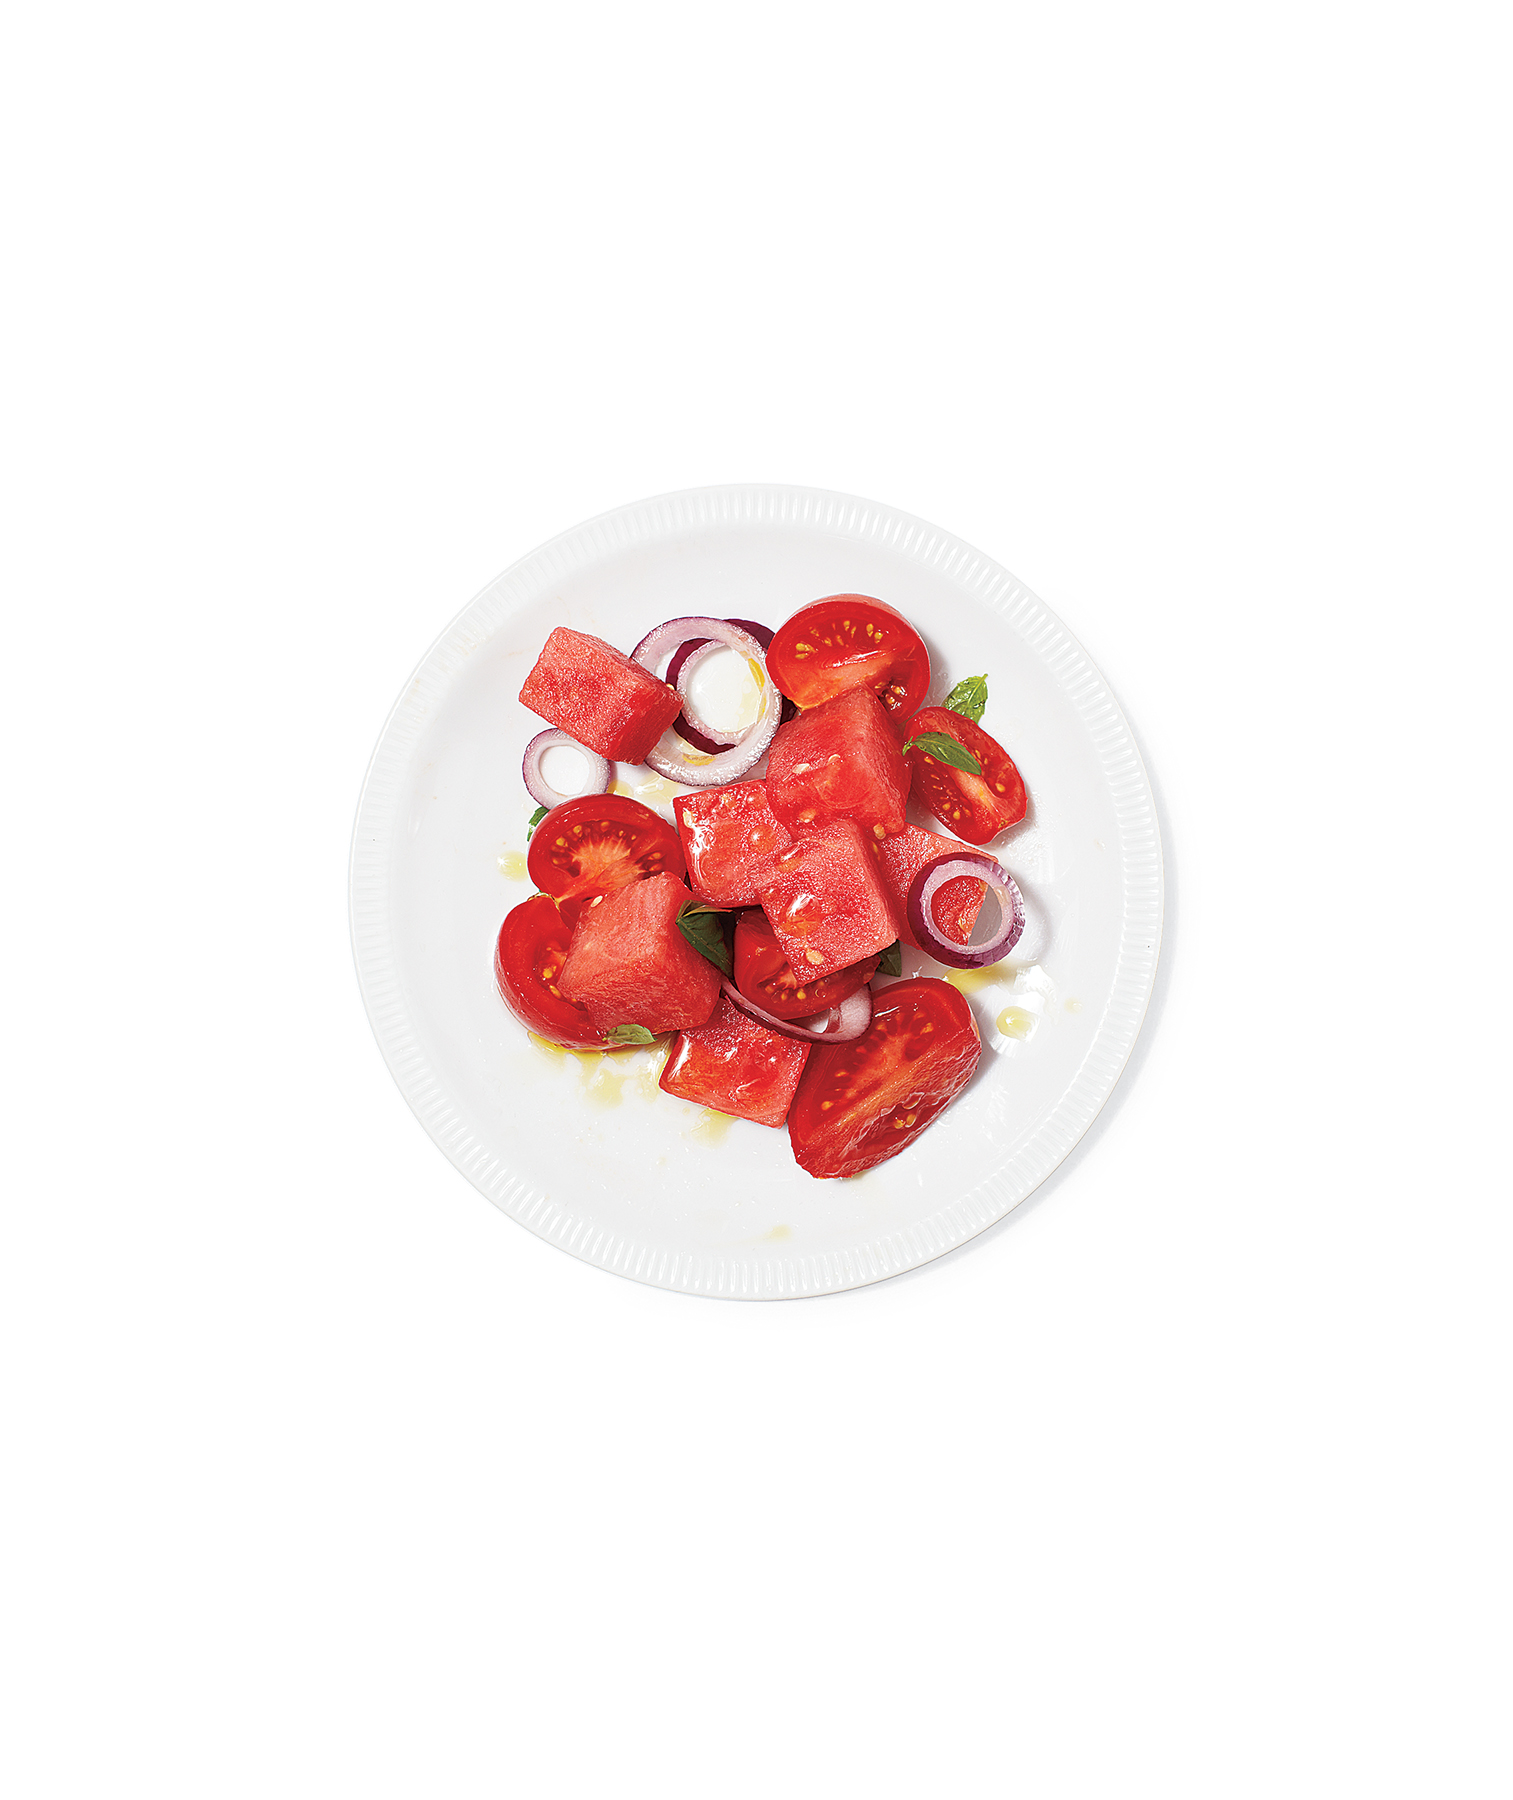 Marinated Watermelon and Tomato Salad